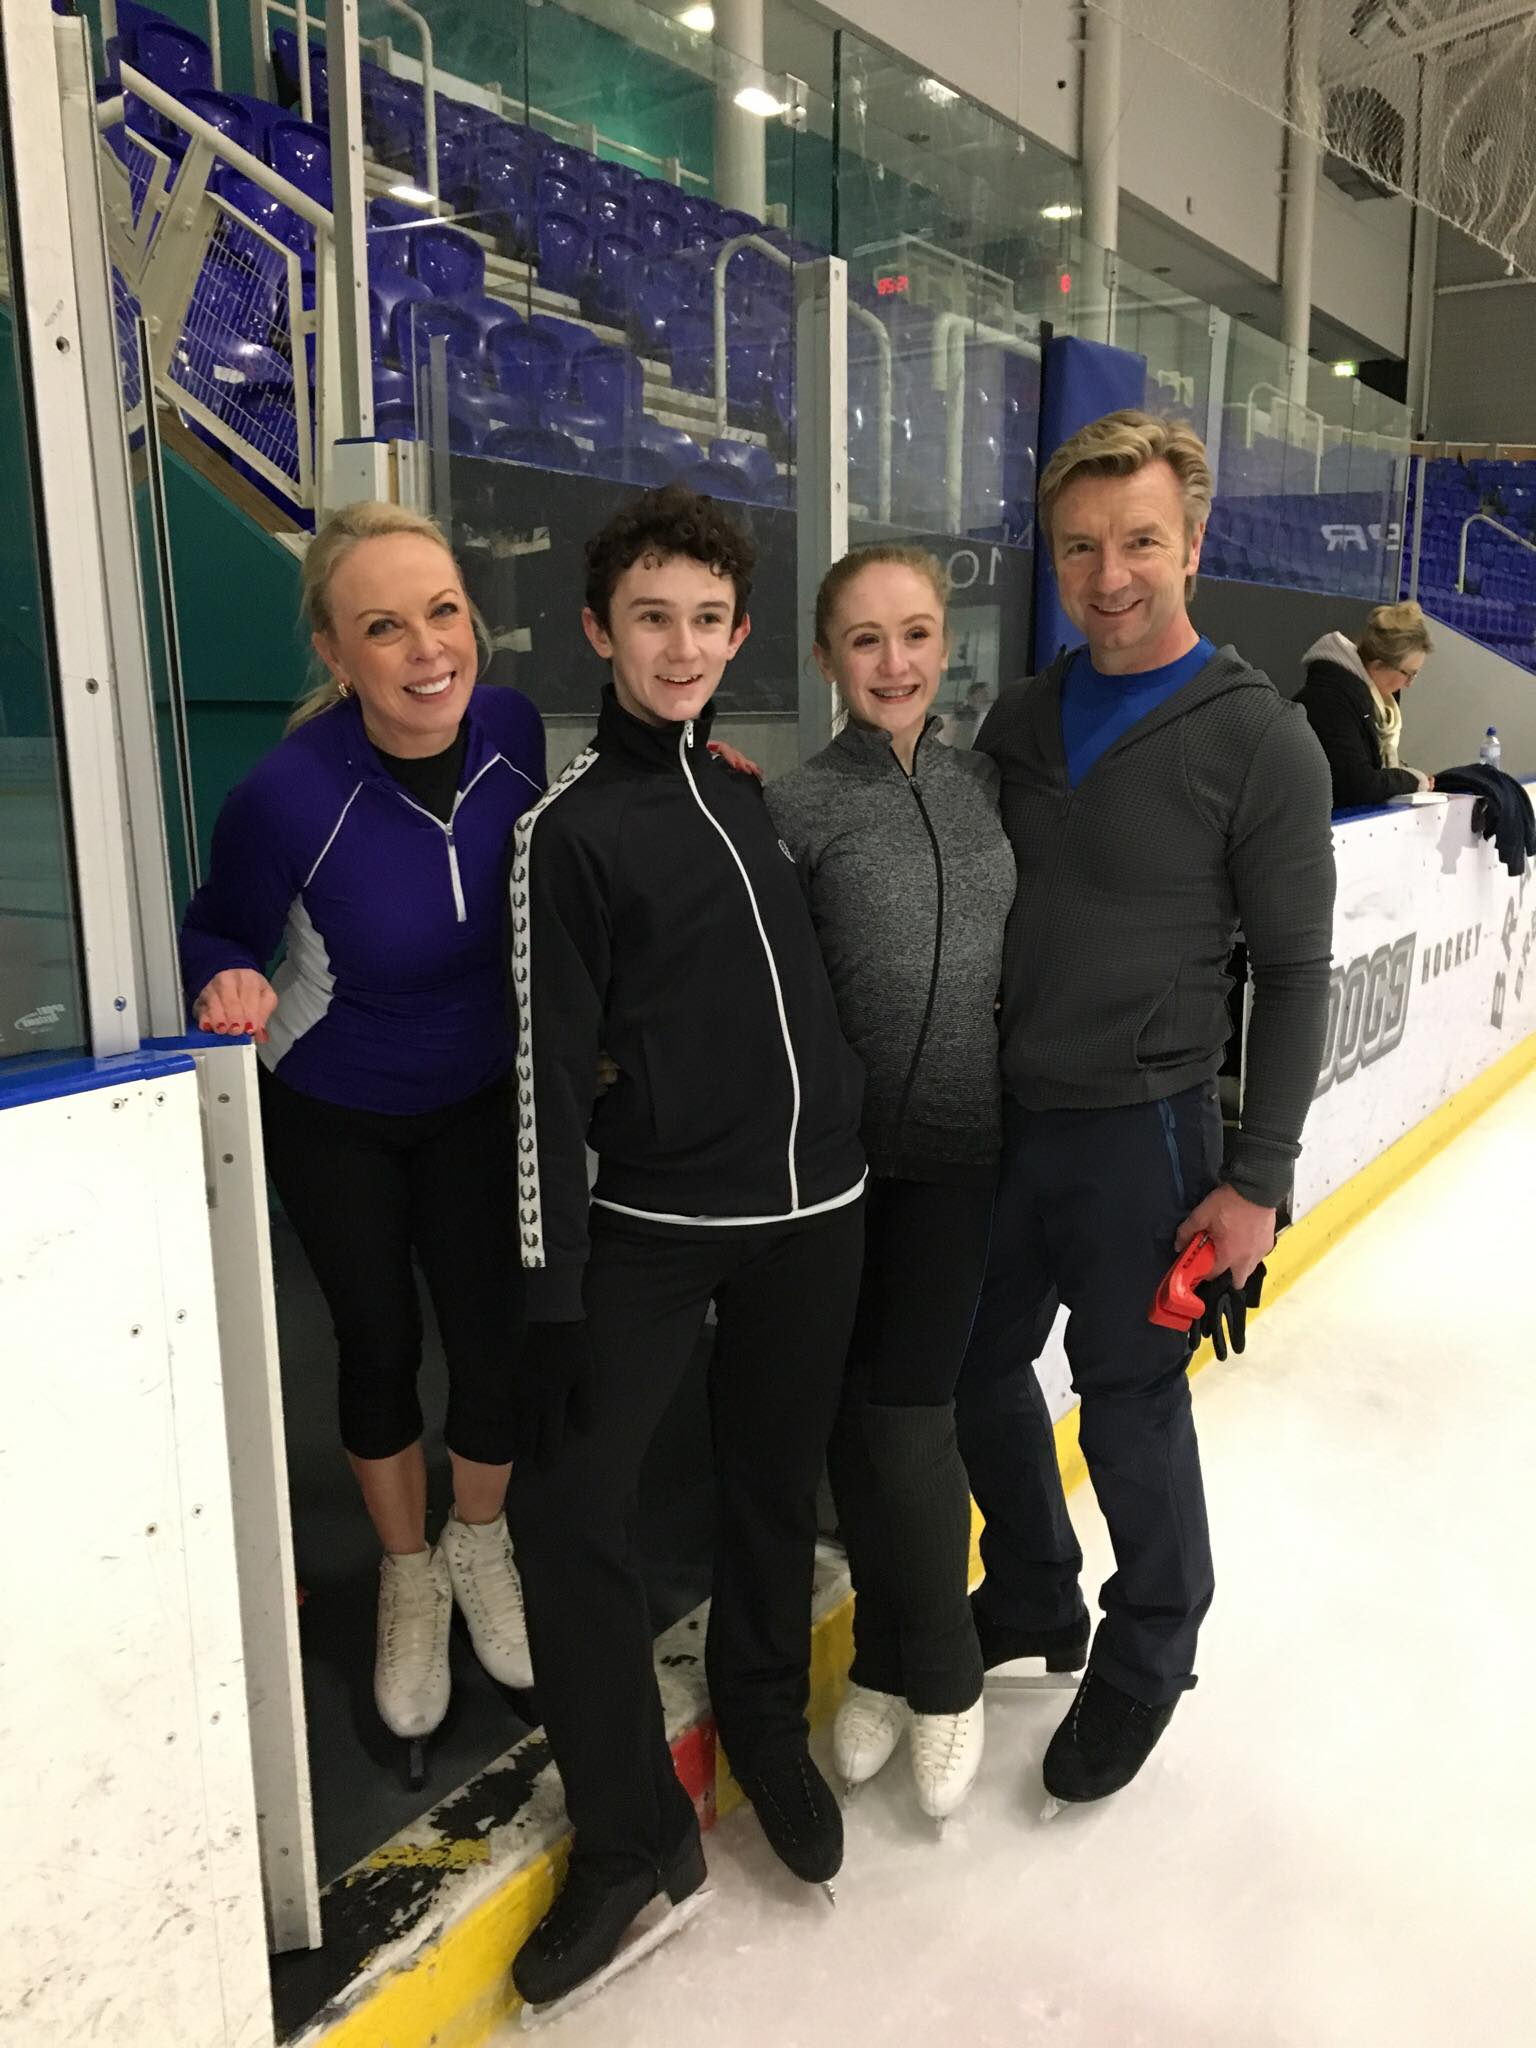 RT @wilsonglenn6661: Time out of training for a snap with Torvill and Dean @torvillanddean https://t.co/HTK6YcYvsm